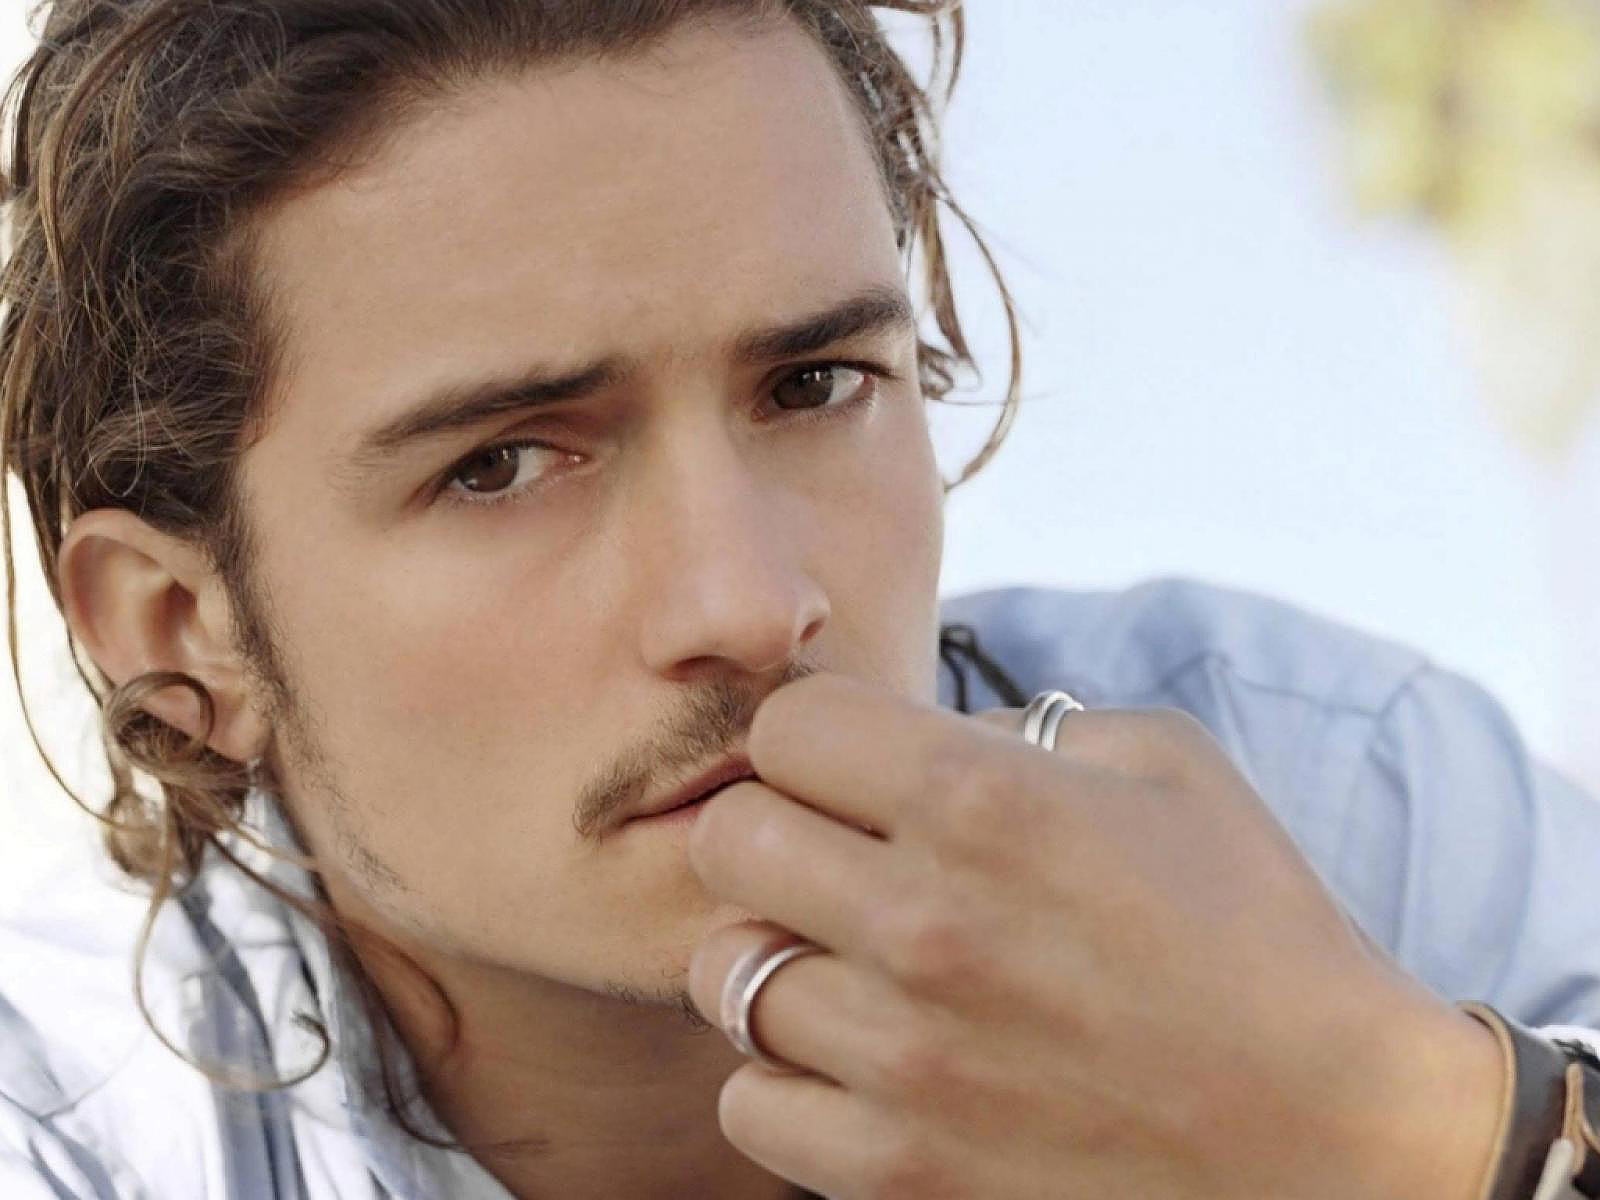 http://3.bp.blogspot.com/-tMq1ou3ISc4/TuXR5yCpxdI/AAAAAAAAAsg/snB6Ld7GMlc/s1600/Orlando-Bloom-pictures-desktop-Wallpapers-HD-photo-images-12.jpg